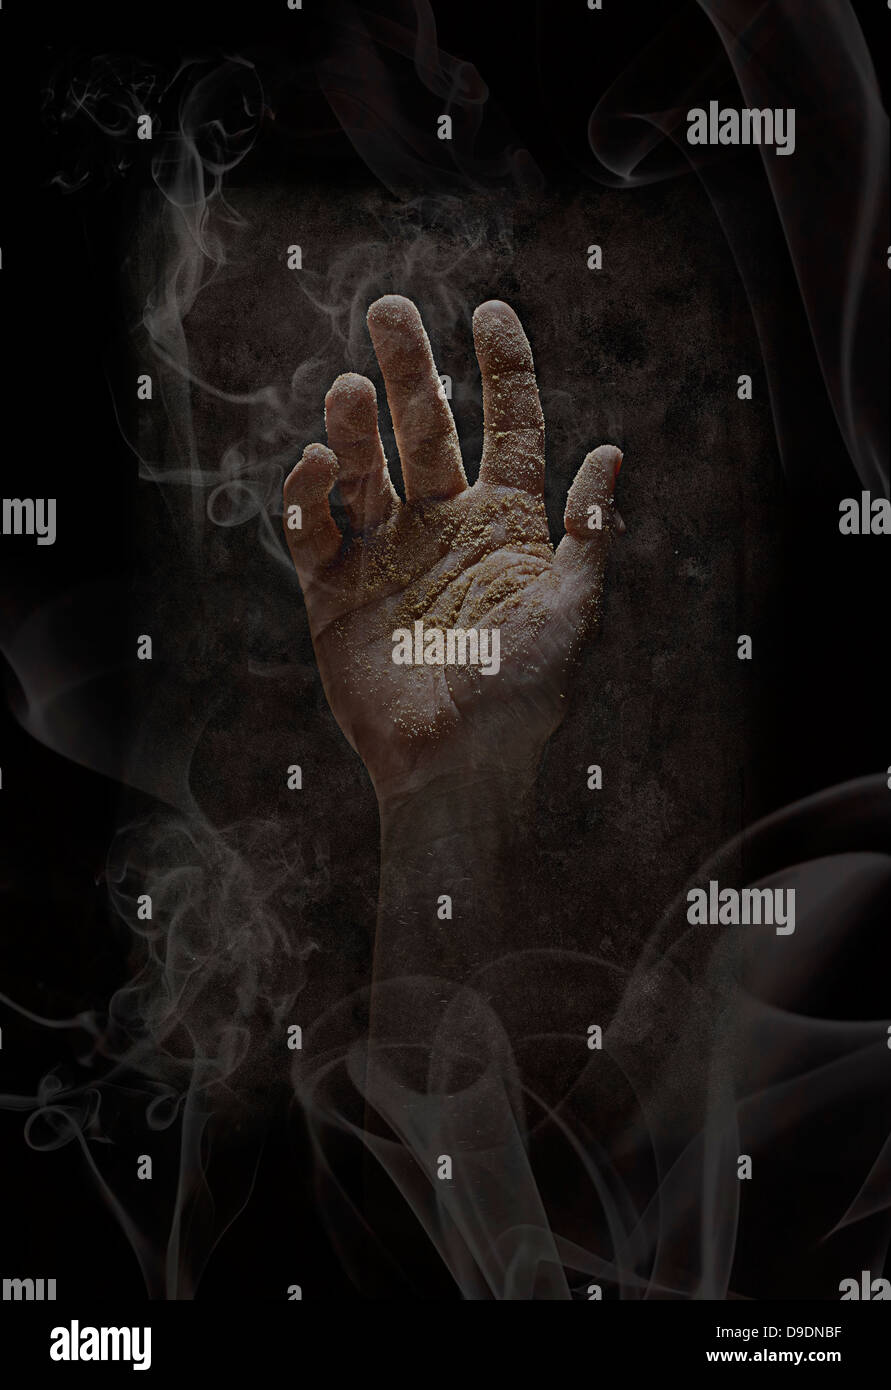 Dirty Hand Reaching Up - Stock Image